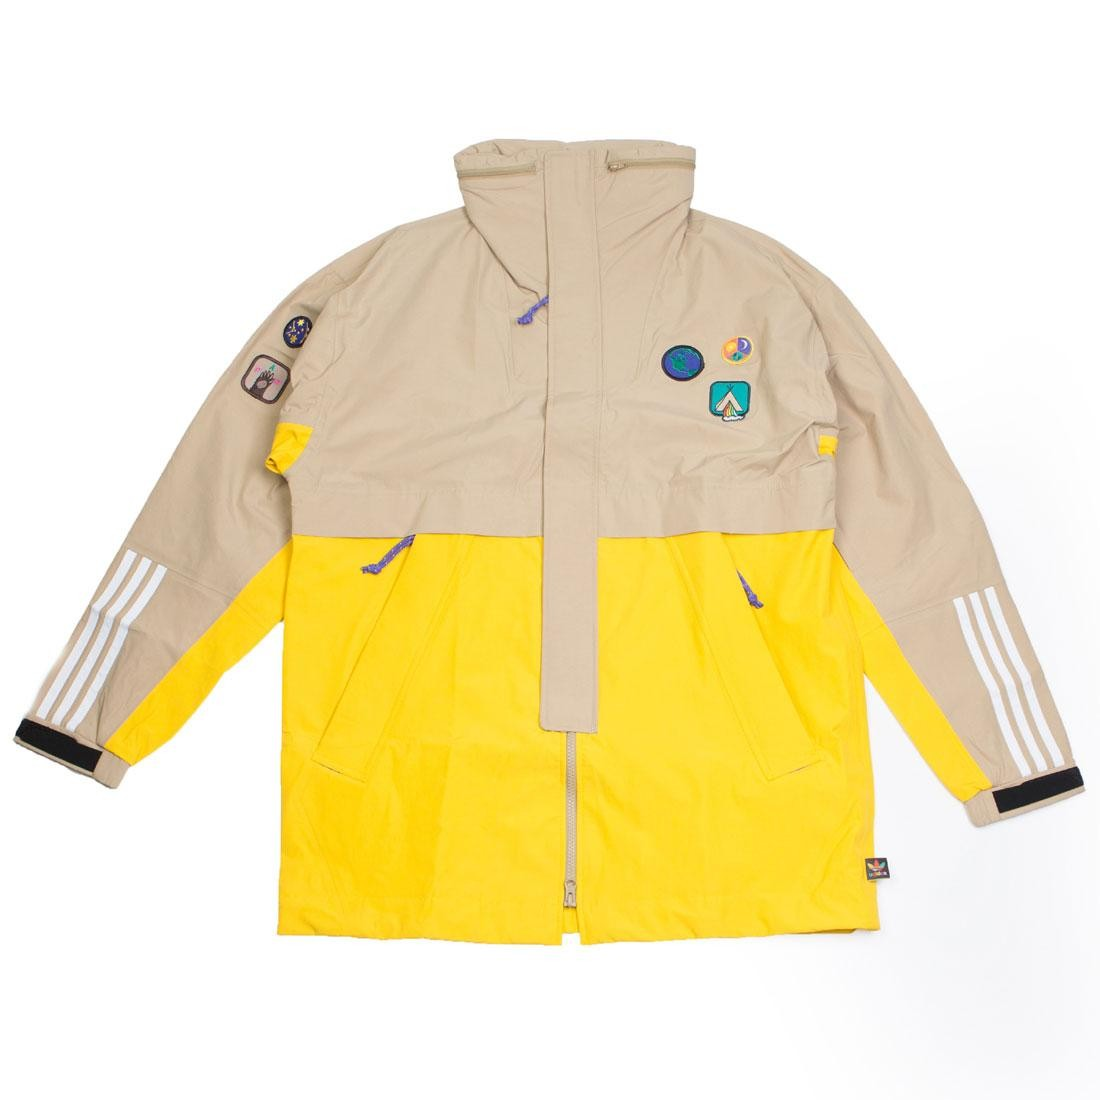 Adidas x Pharrell Williams Men Hu Hiking 3 Layer Jacket (beige hemp eqt yellow)